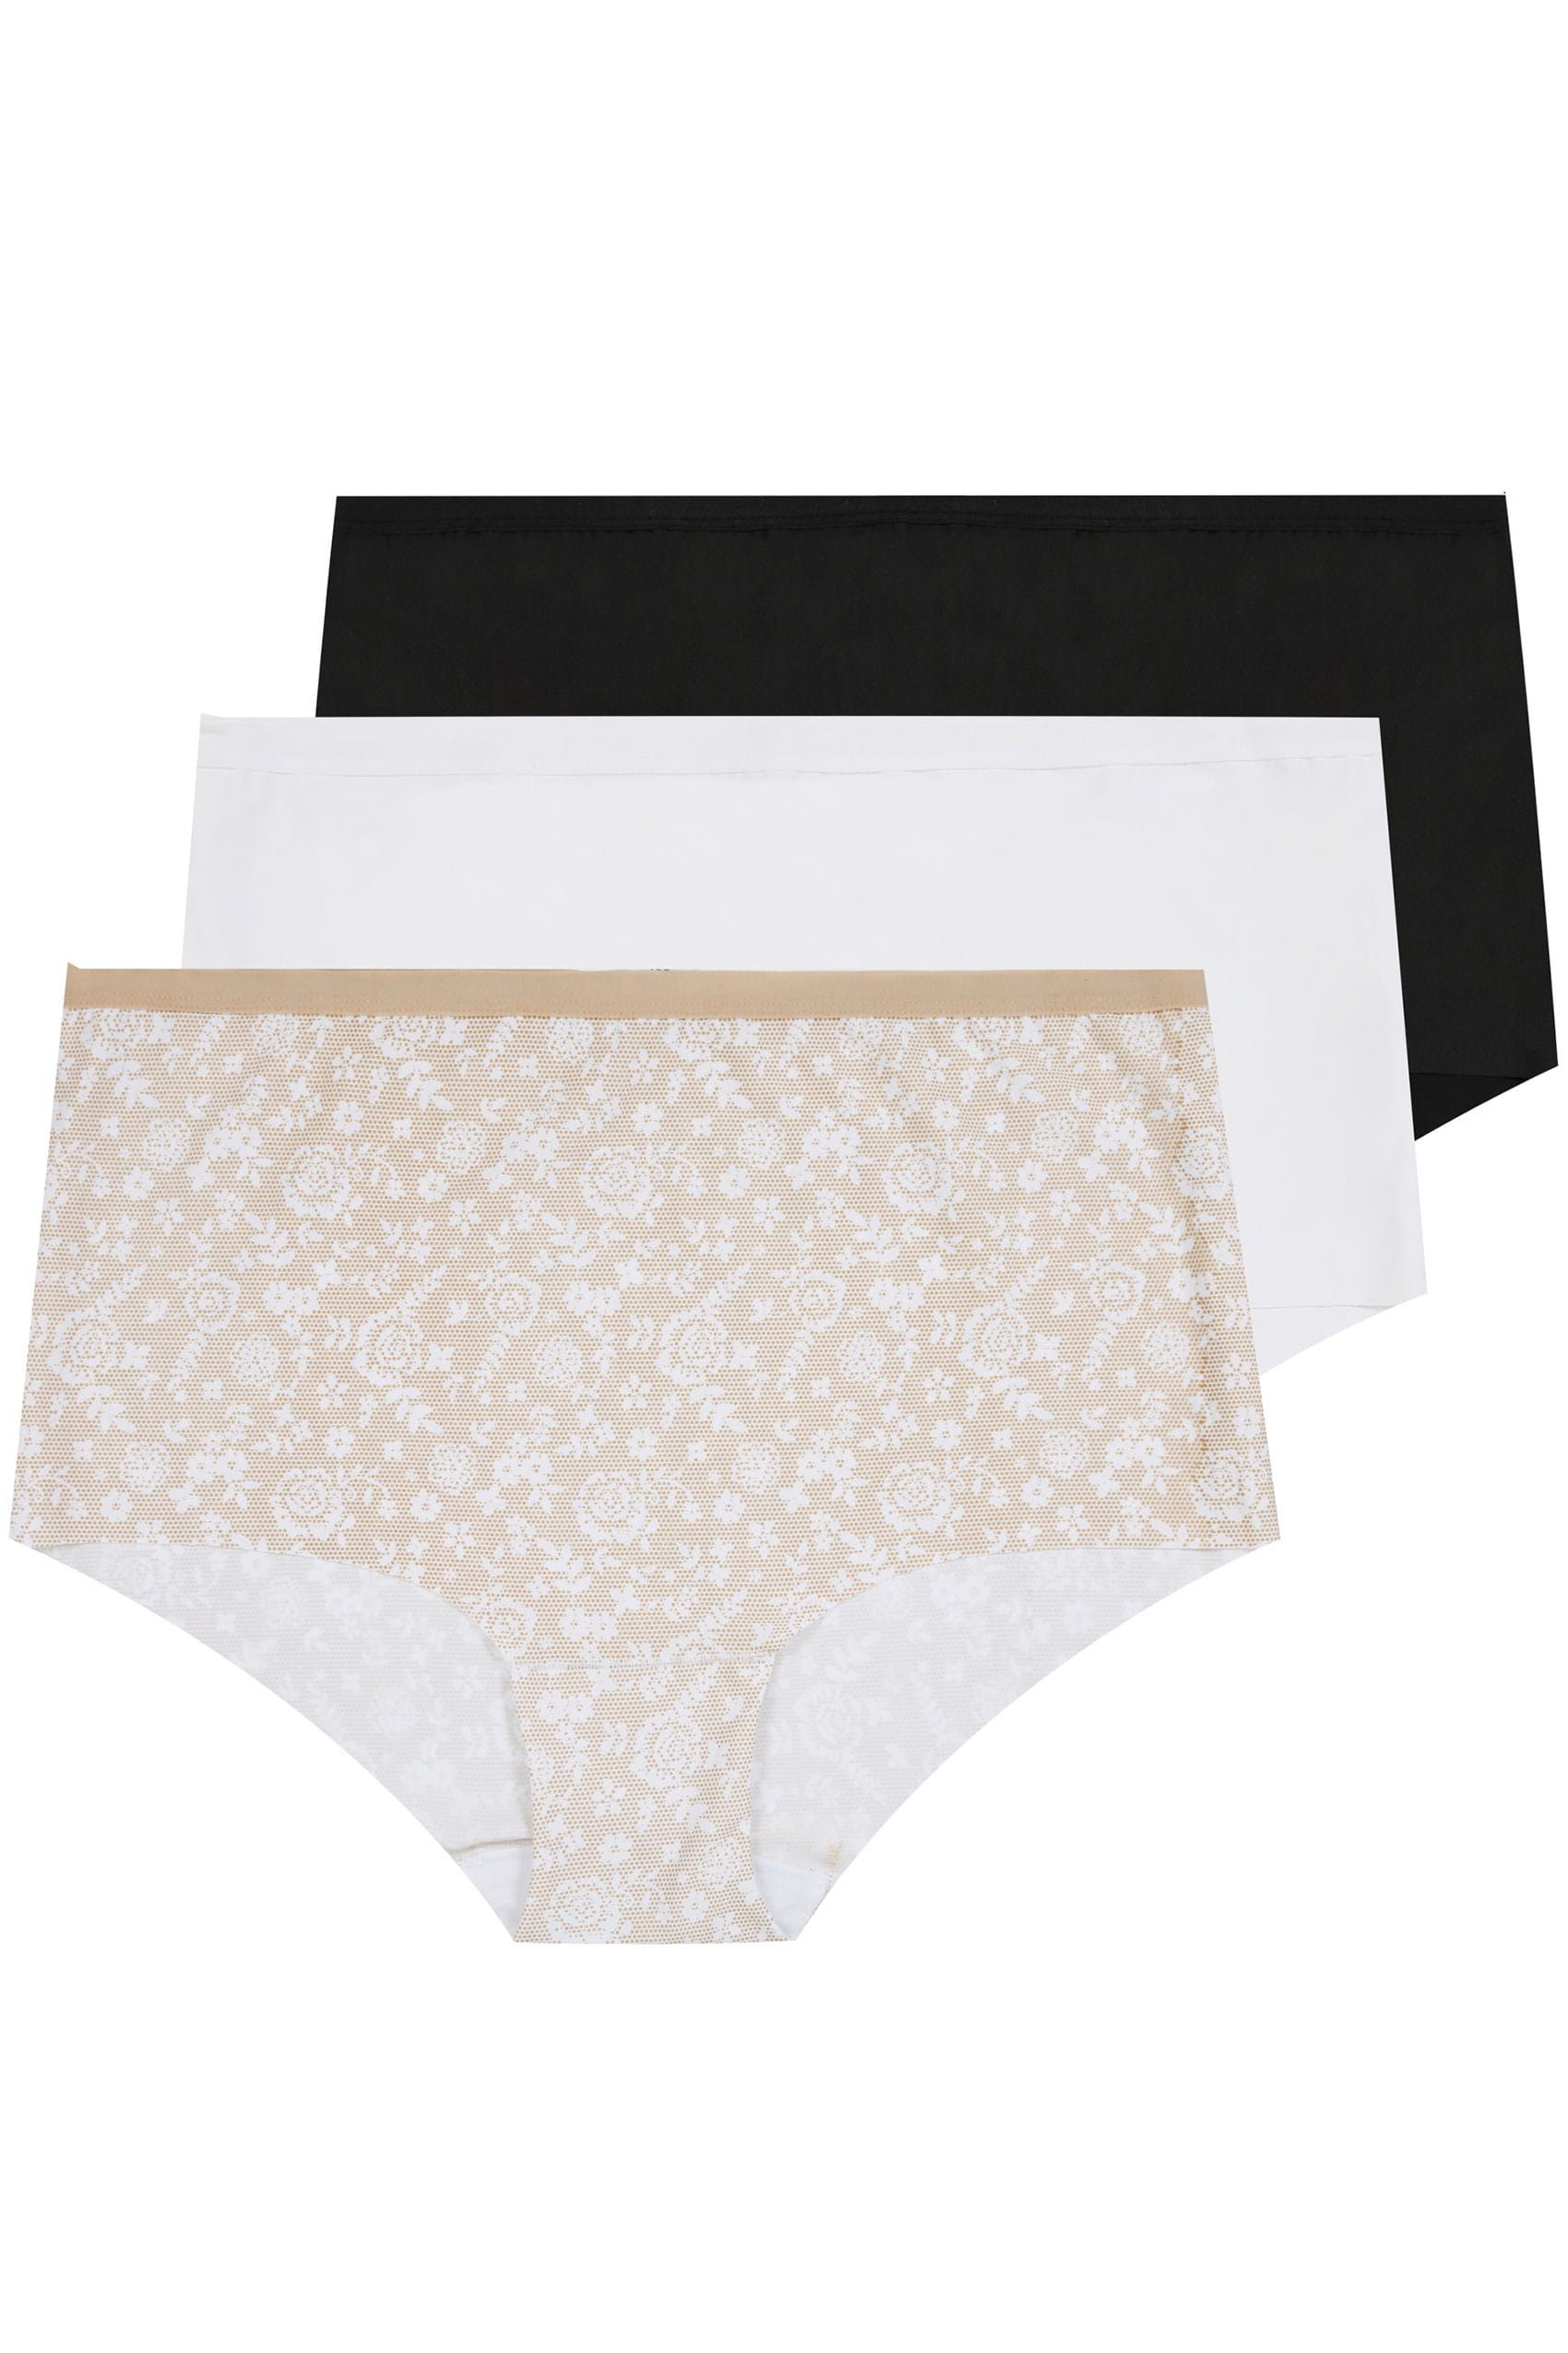 wholesale terms and conditions template - 3 pack black white nude lace print no vpl full briefs